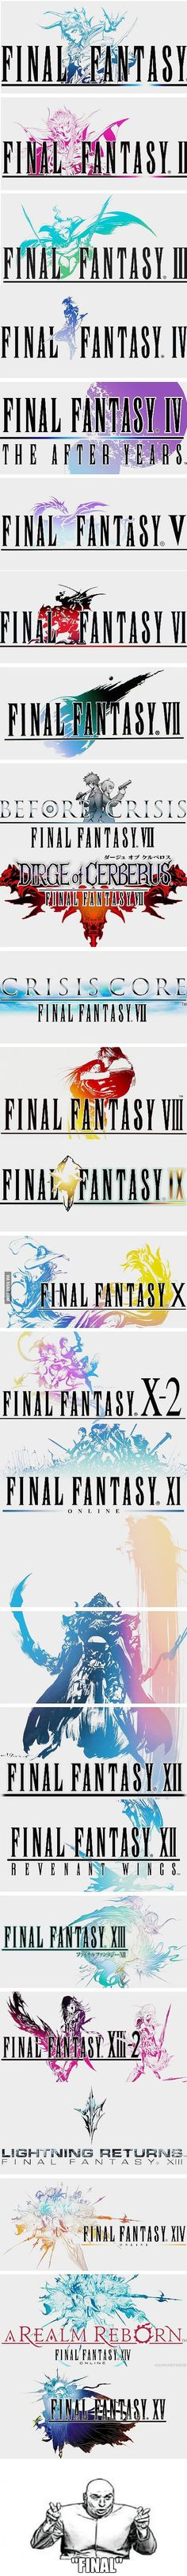 "I am waiting to say ""Finally final final-fantasy"""